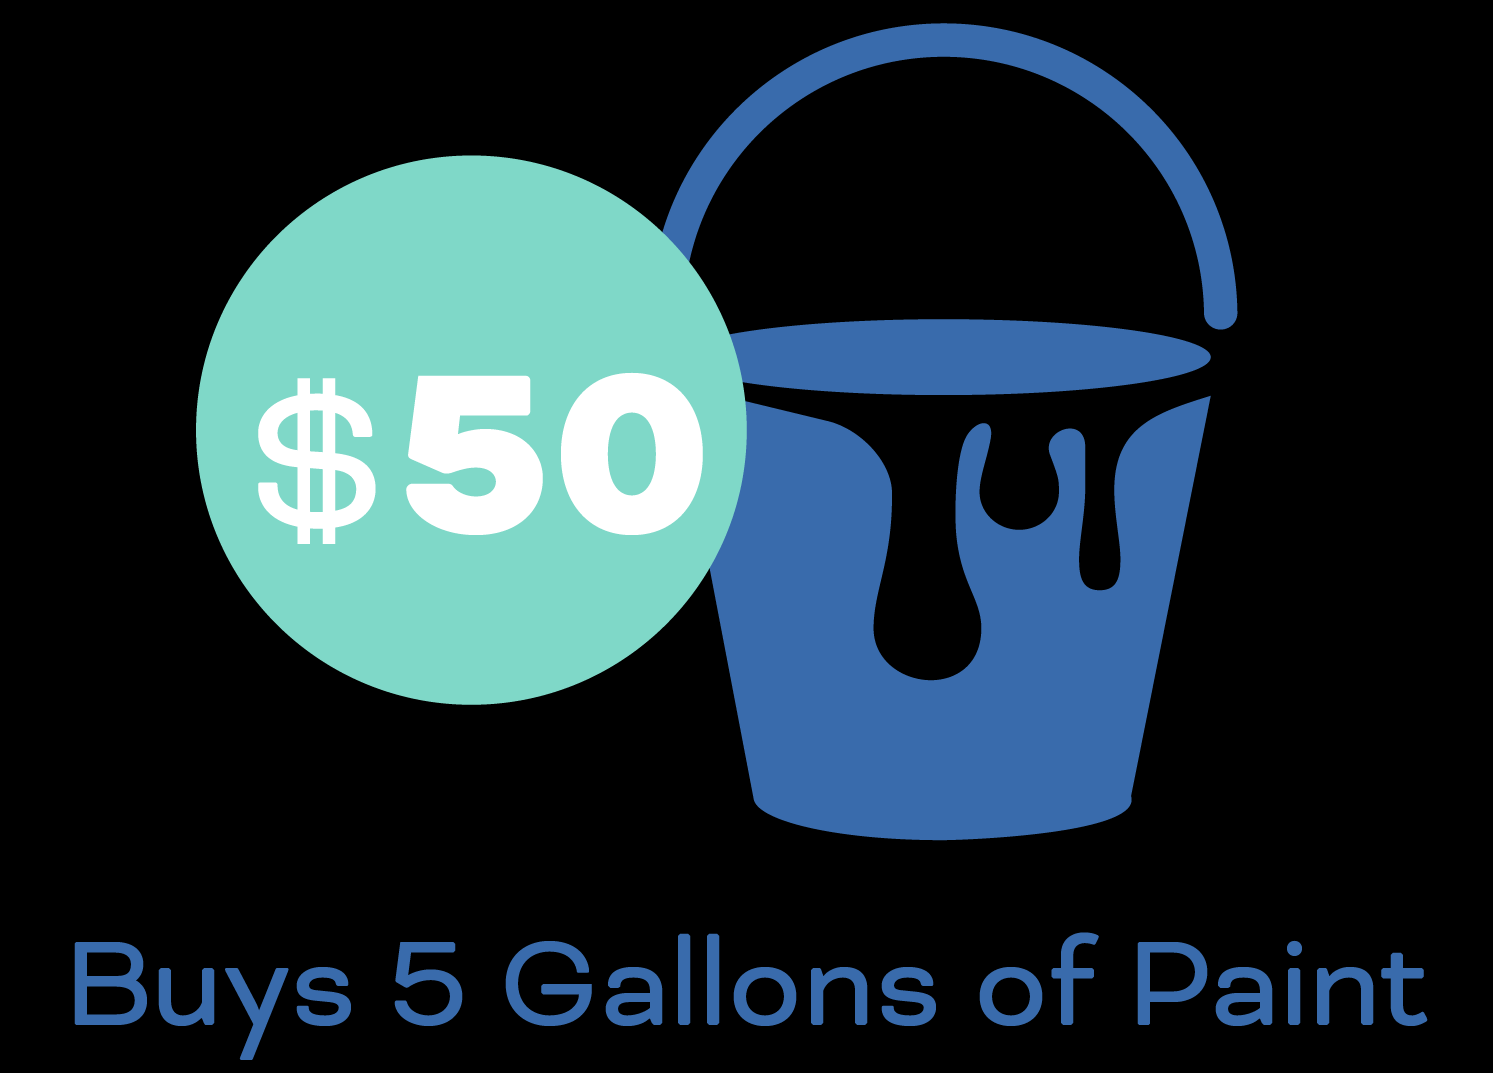 $50 buys 5 gallons of paint.